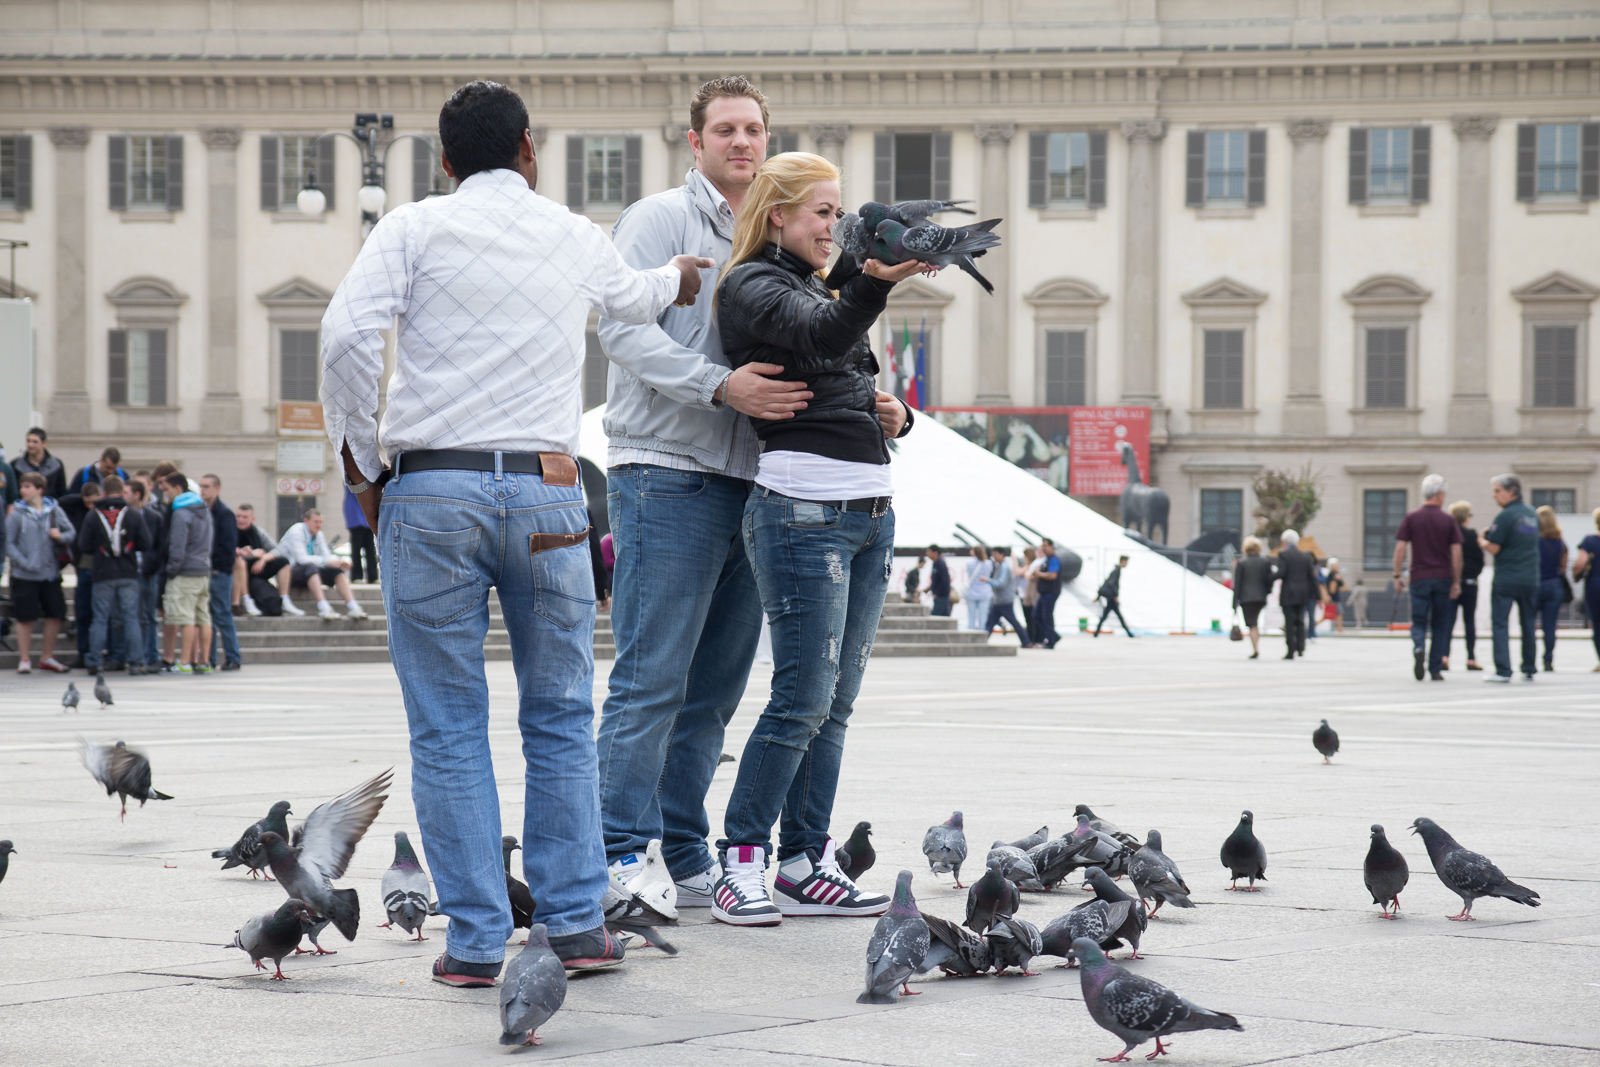 The usual suspects (feeding the pigeons)